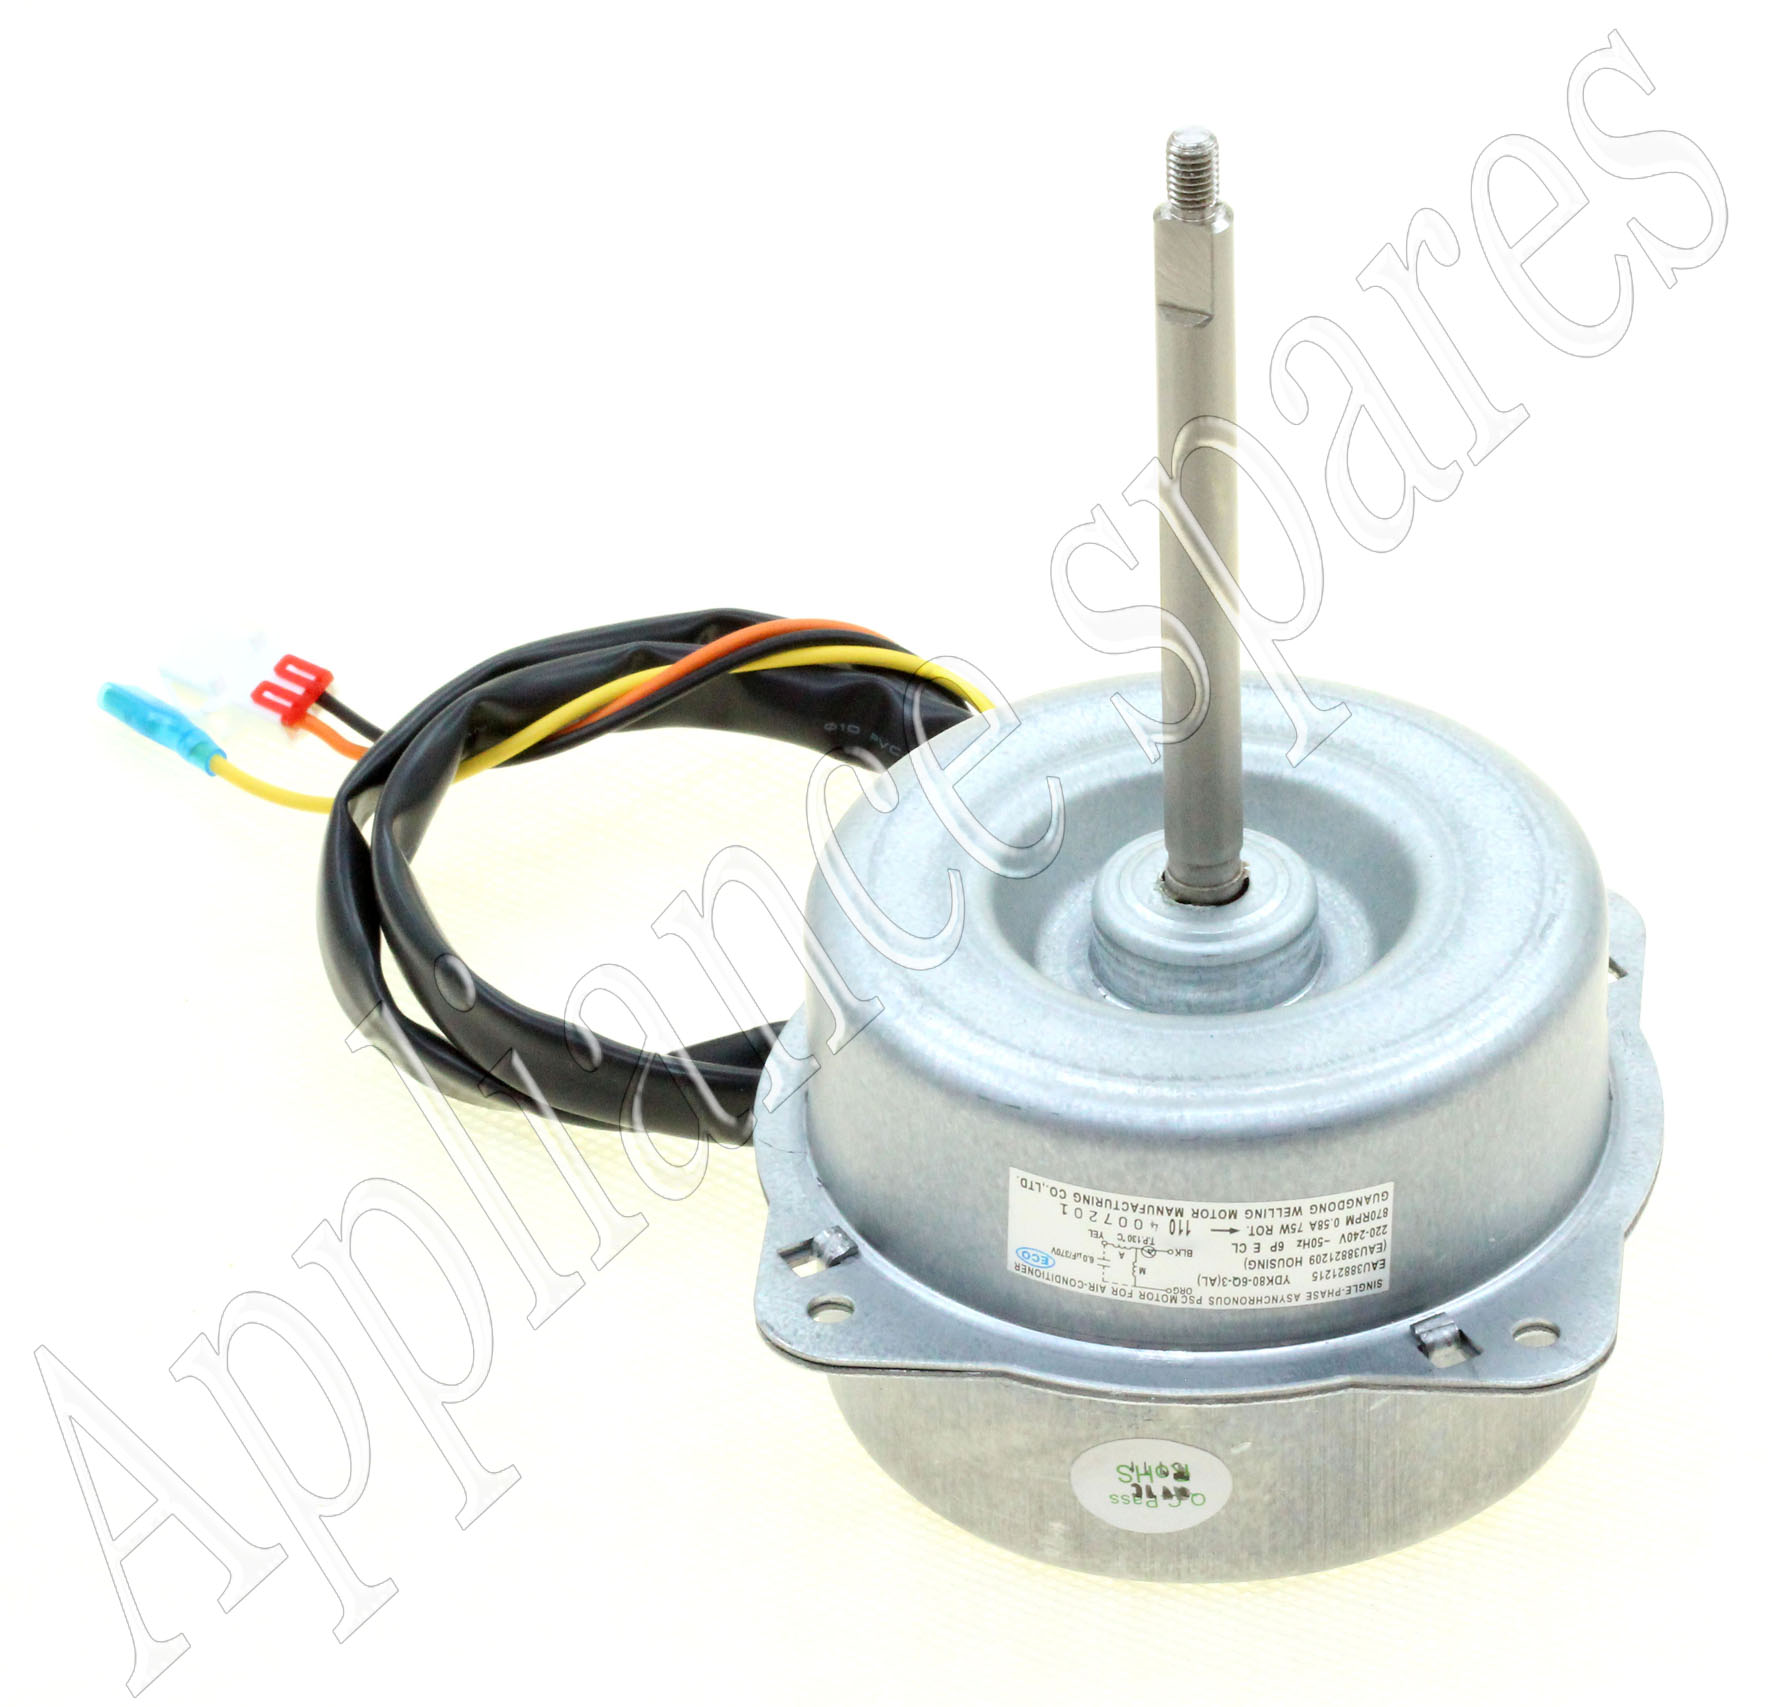 Lg Aircon Condensor Fan Motor 220v 55w Lategan And Van